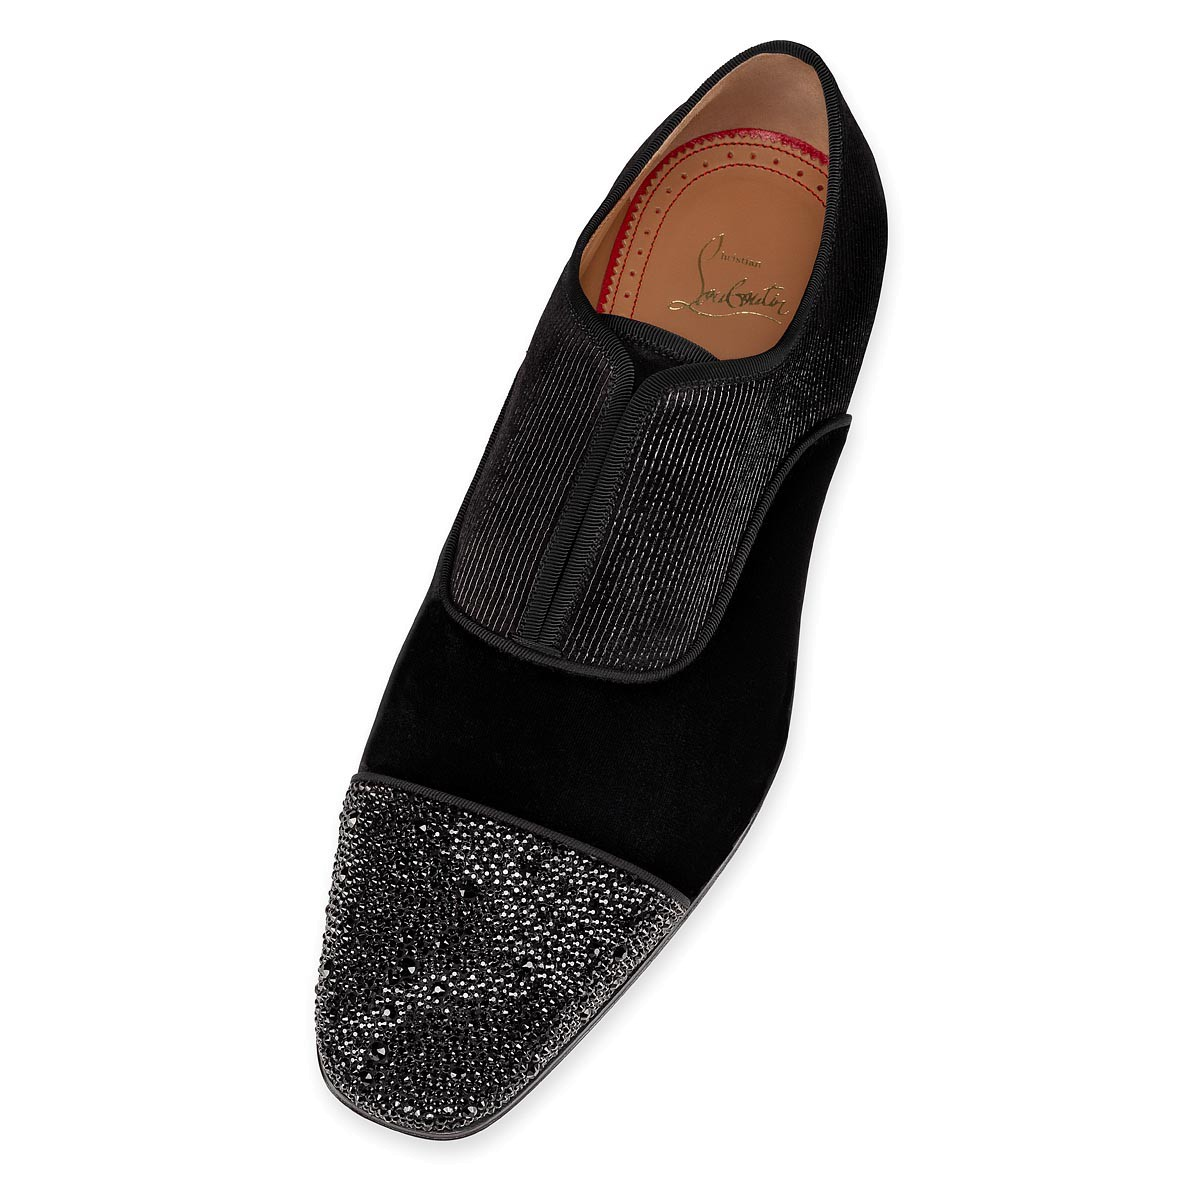 メンズシューズ - Alpha Male P Strass - Christian Louboutin